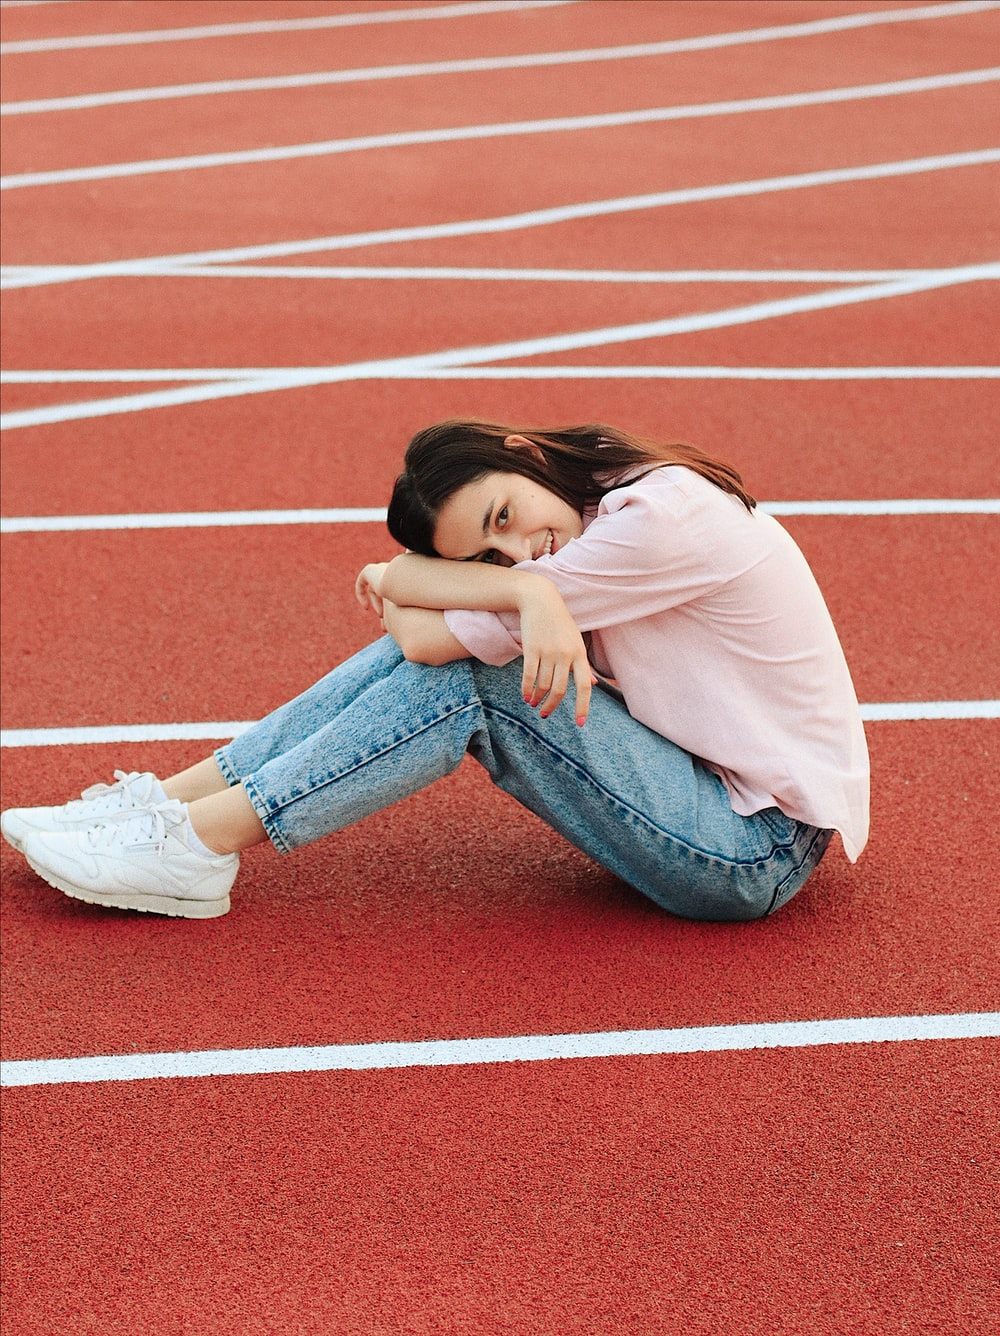 woman sitting on track field